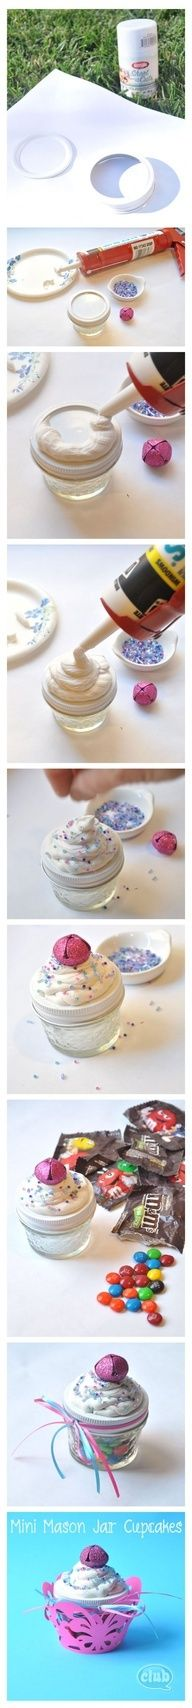 Mini Mason Jar Candy Cupcakes DIY craft using caulk and beads.